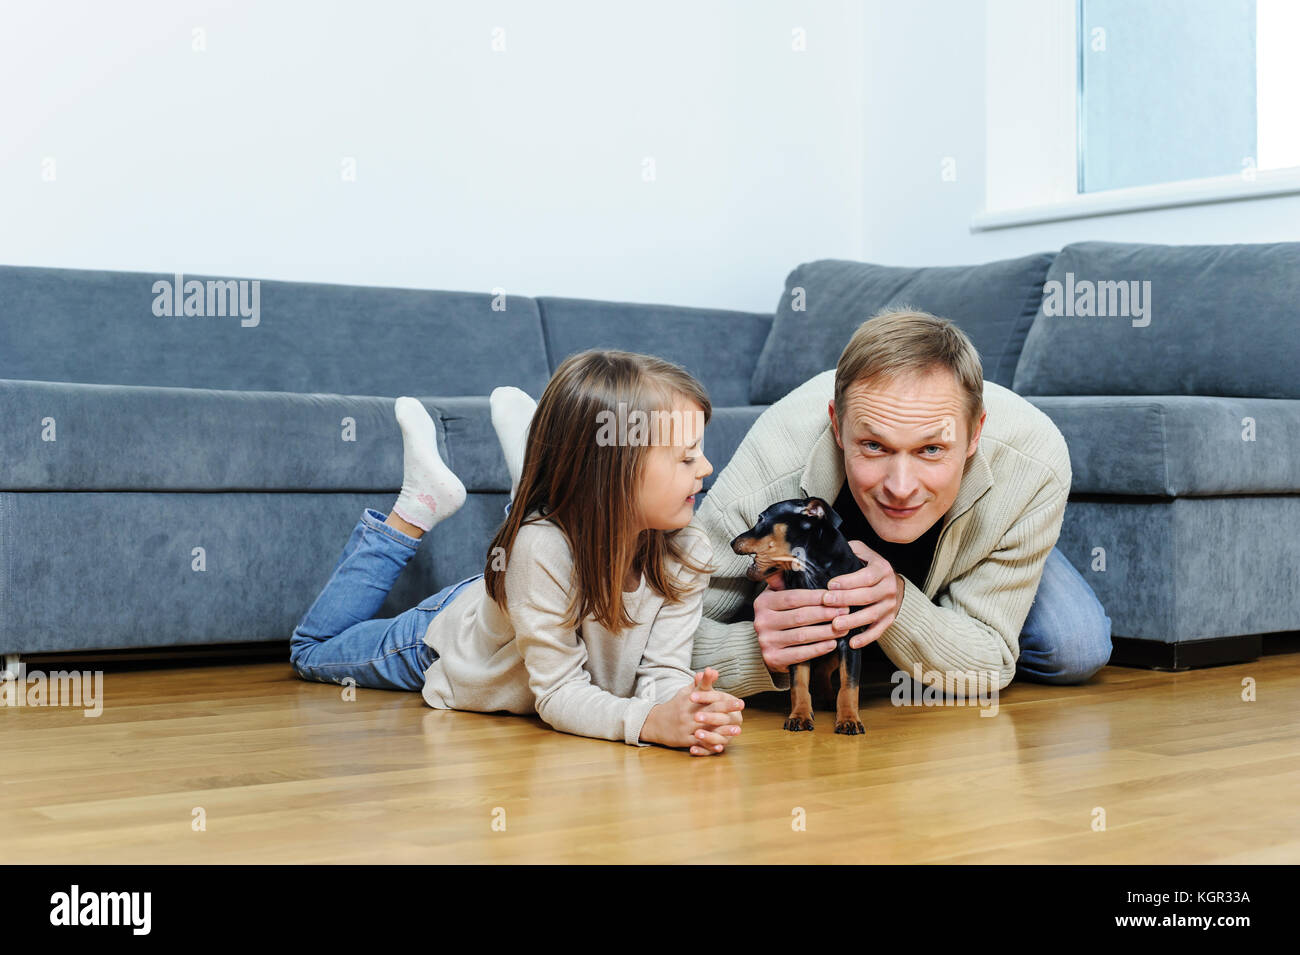 The girl and the man with the puppy are on the floor in the room. - Stock Image